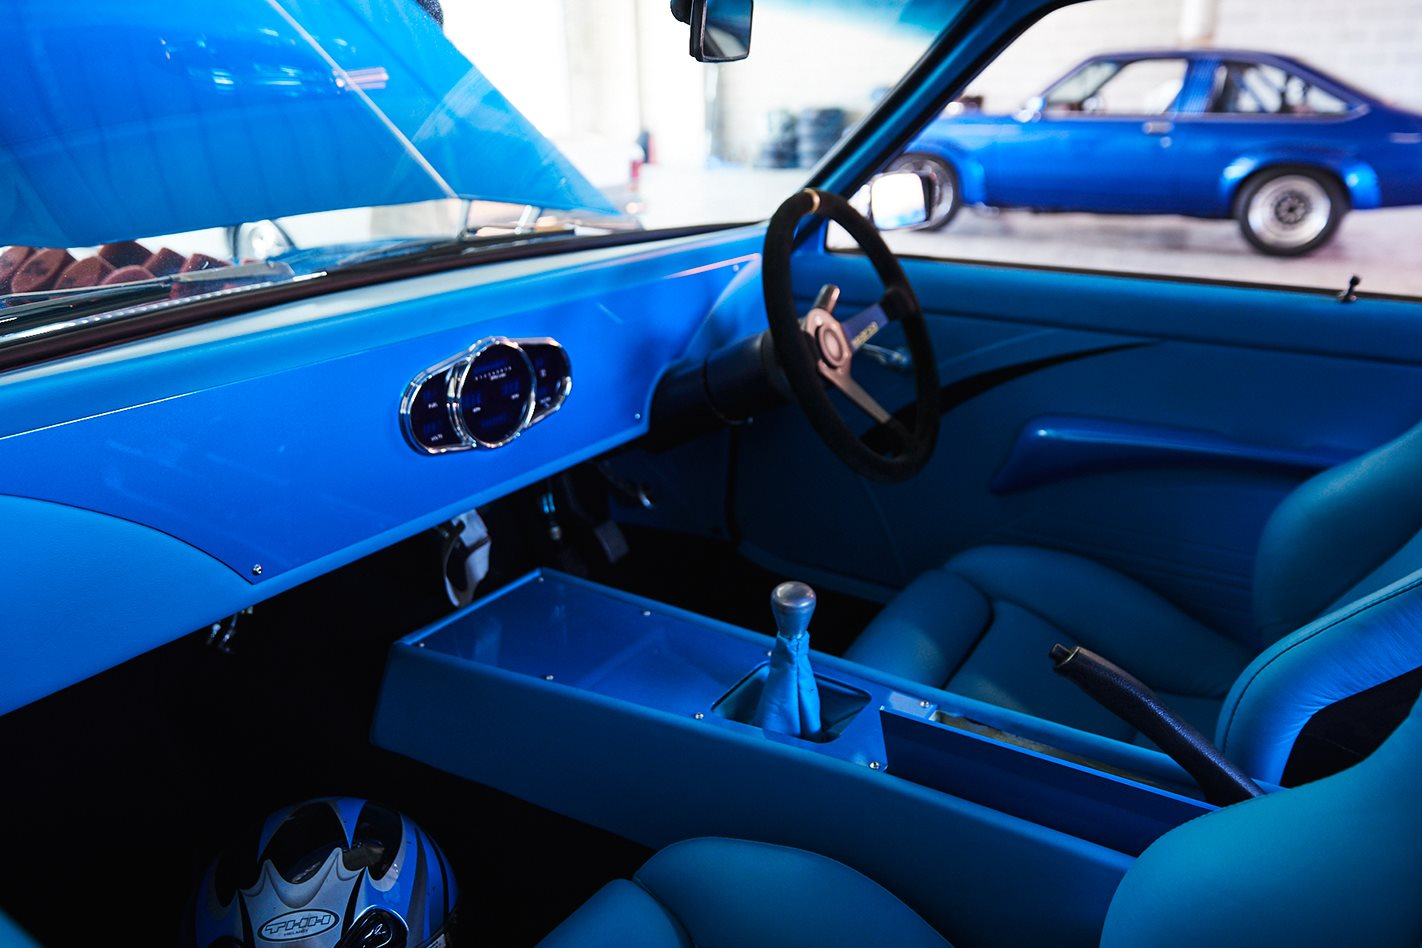 Spinks Torana inside